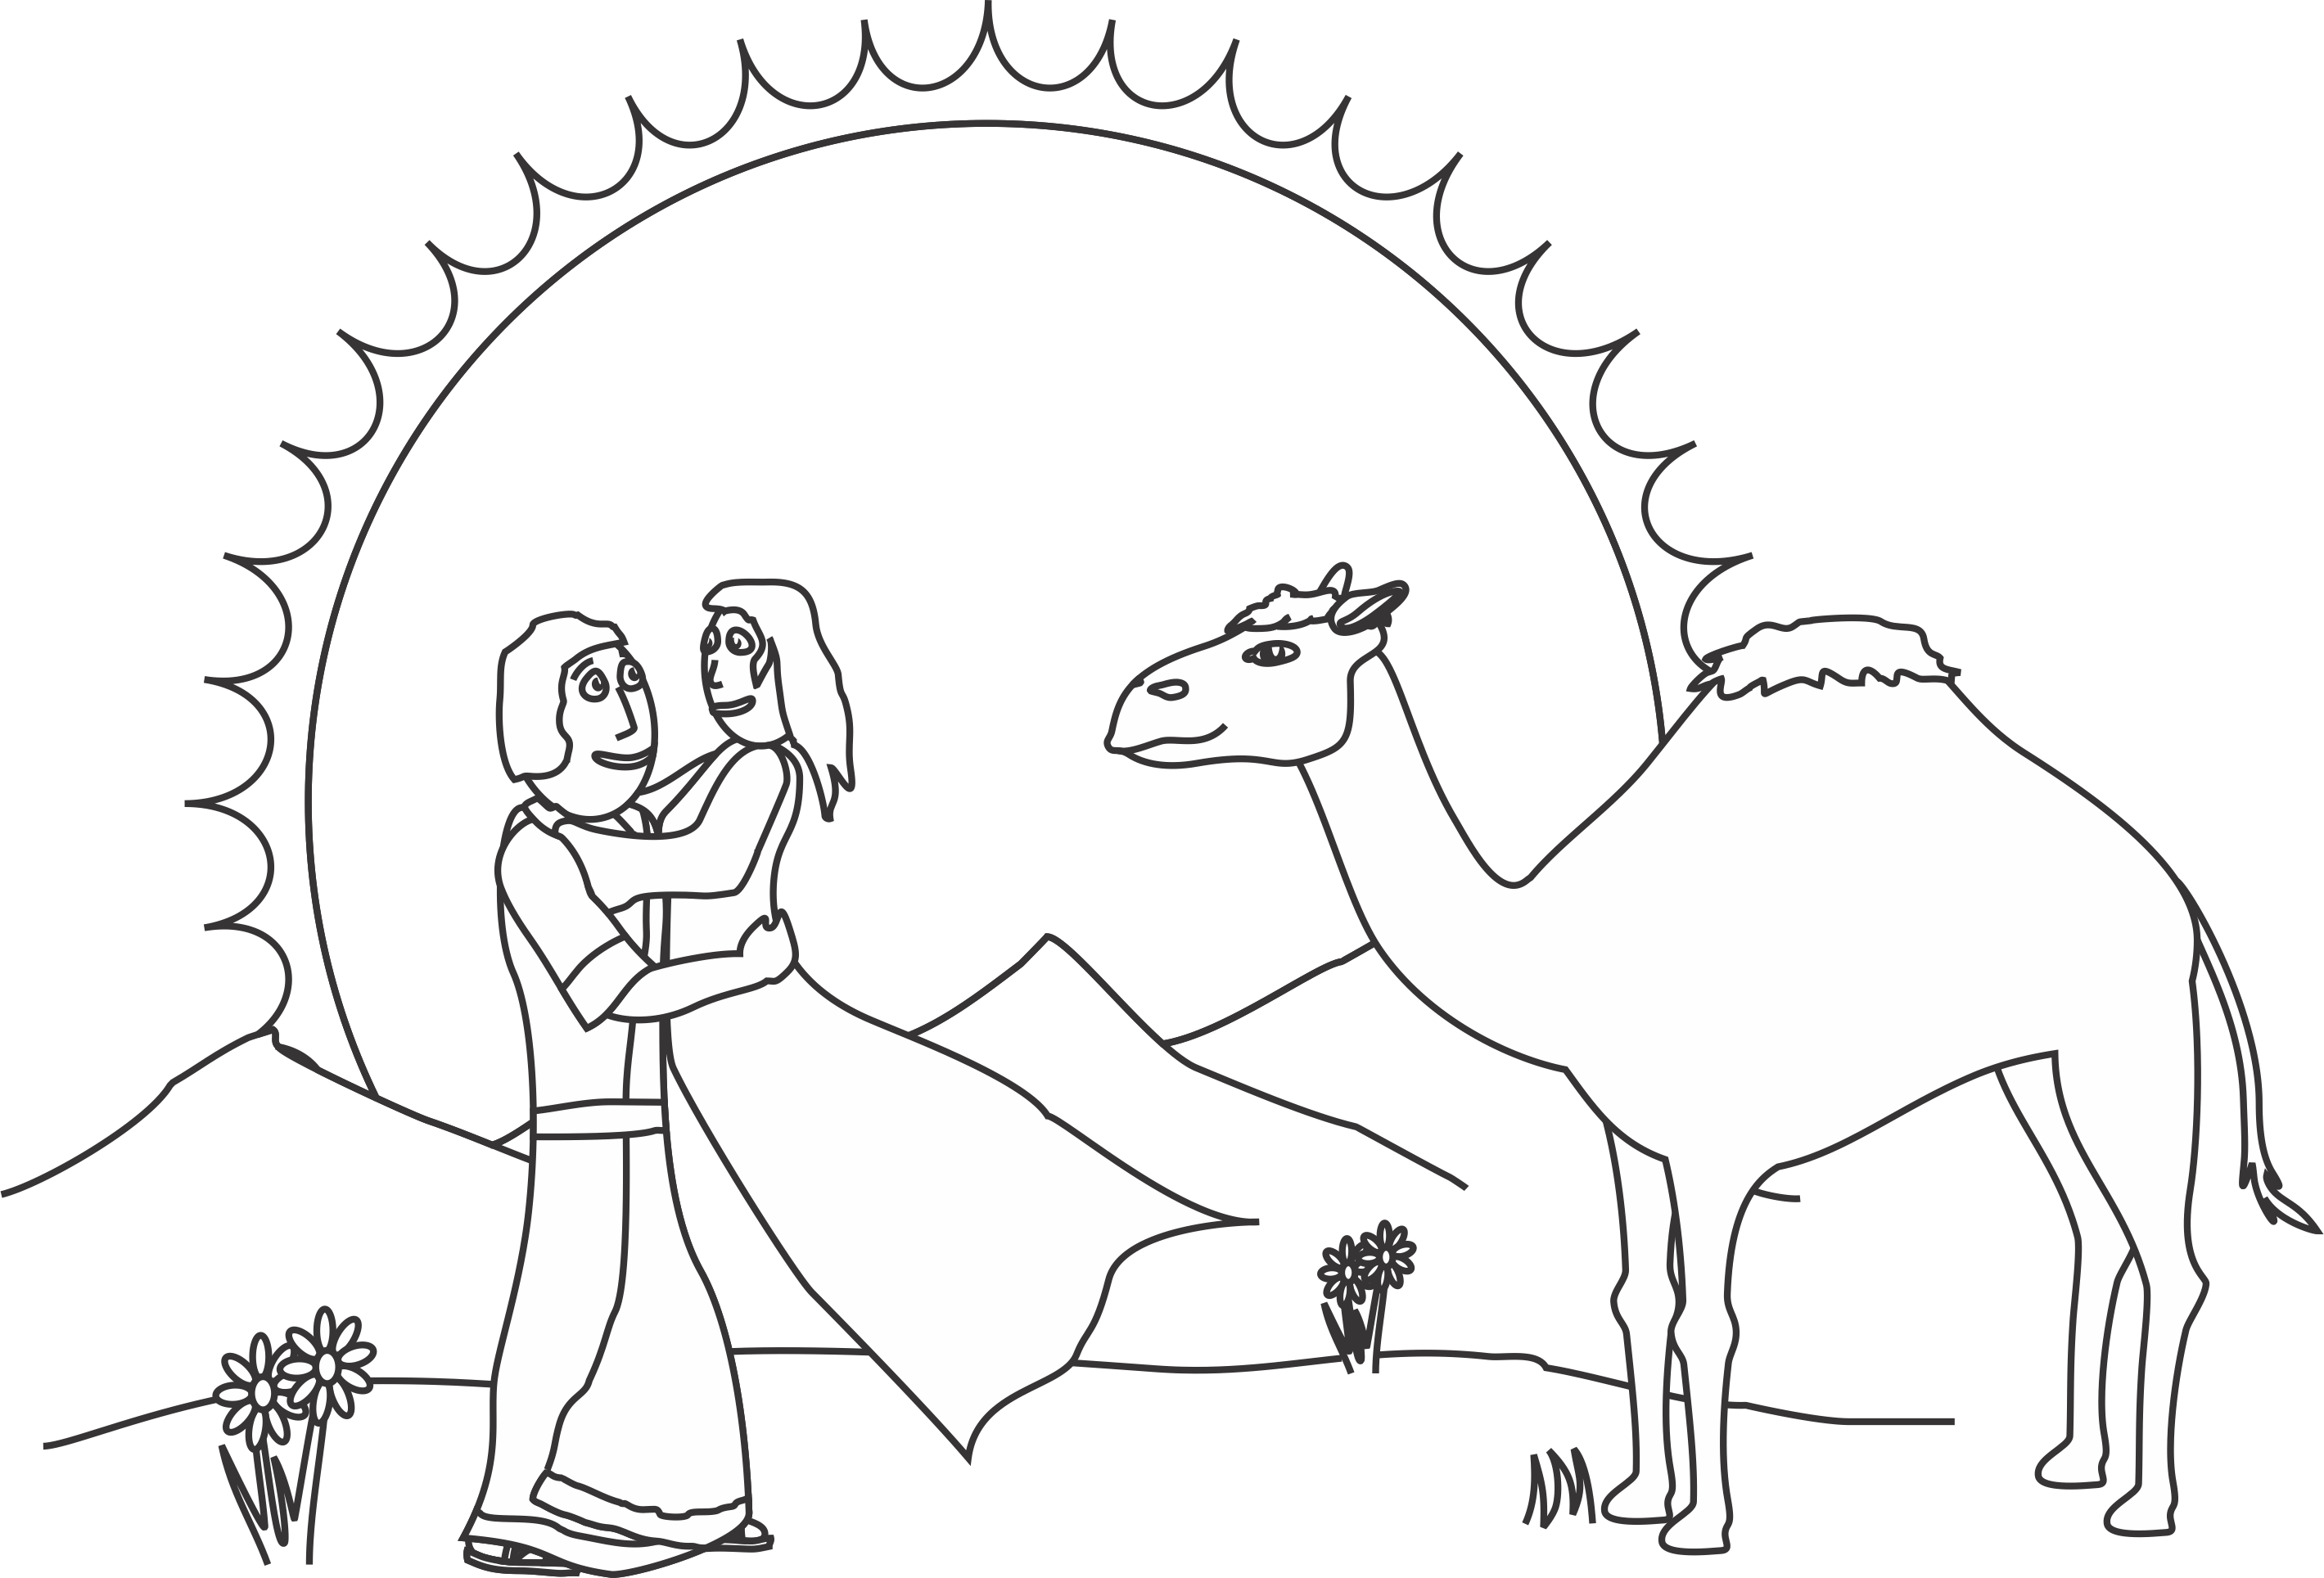 coloring picture of isaac and rebekah rebecca at the well with abraham39s servant bible coloring and rebekah picture of coloring isaac